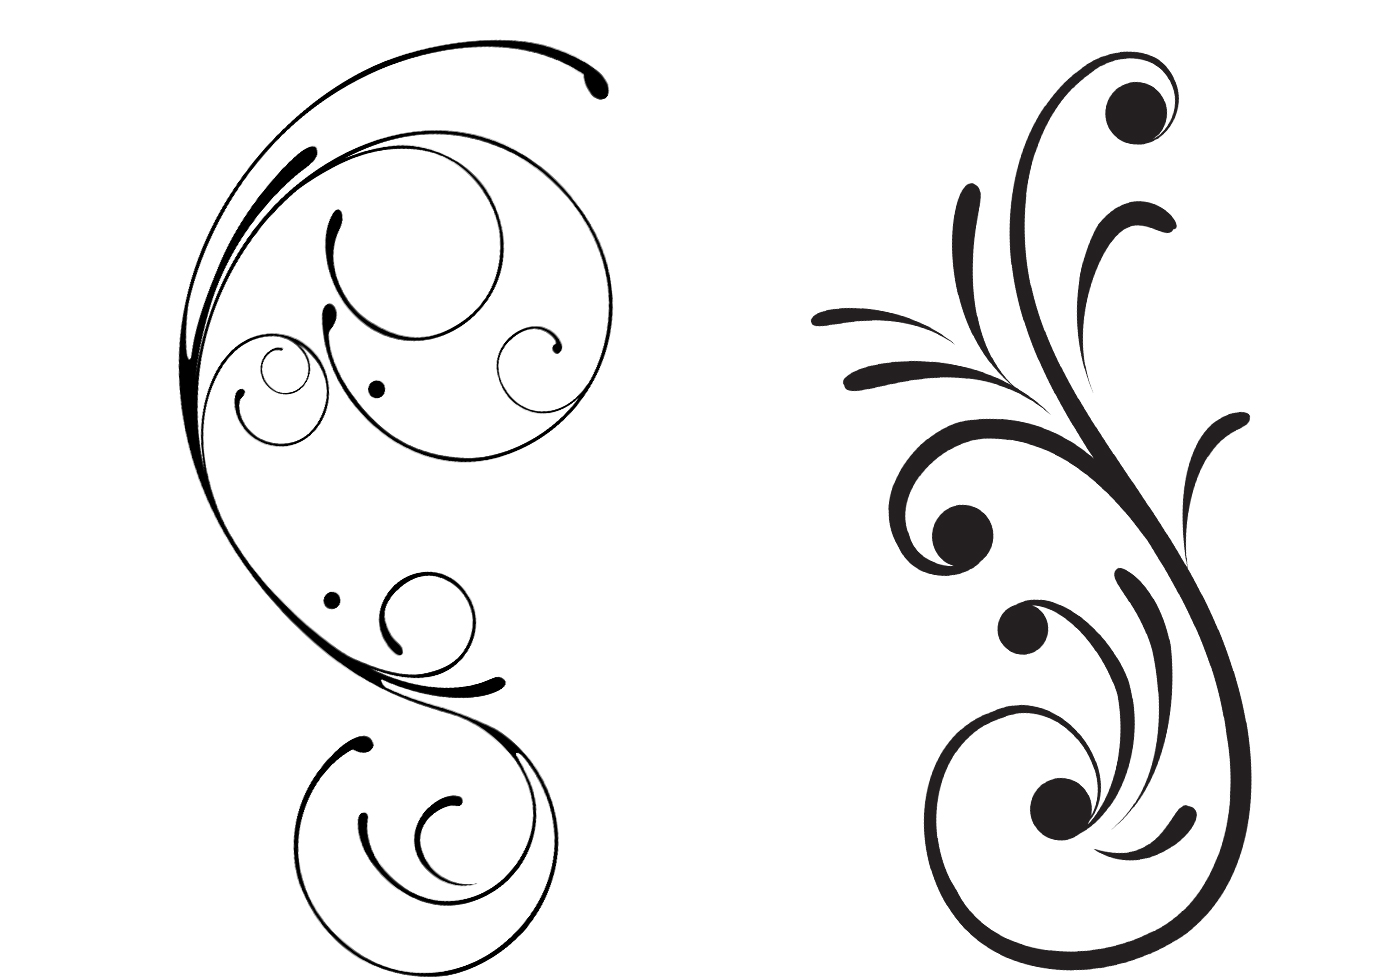 free swirly floral scrolls brushes free photoshop brushes at brusheezy. Black Bedroom Furniture Sets. Home Design Ideas